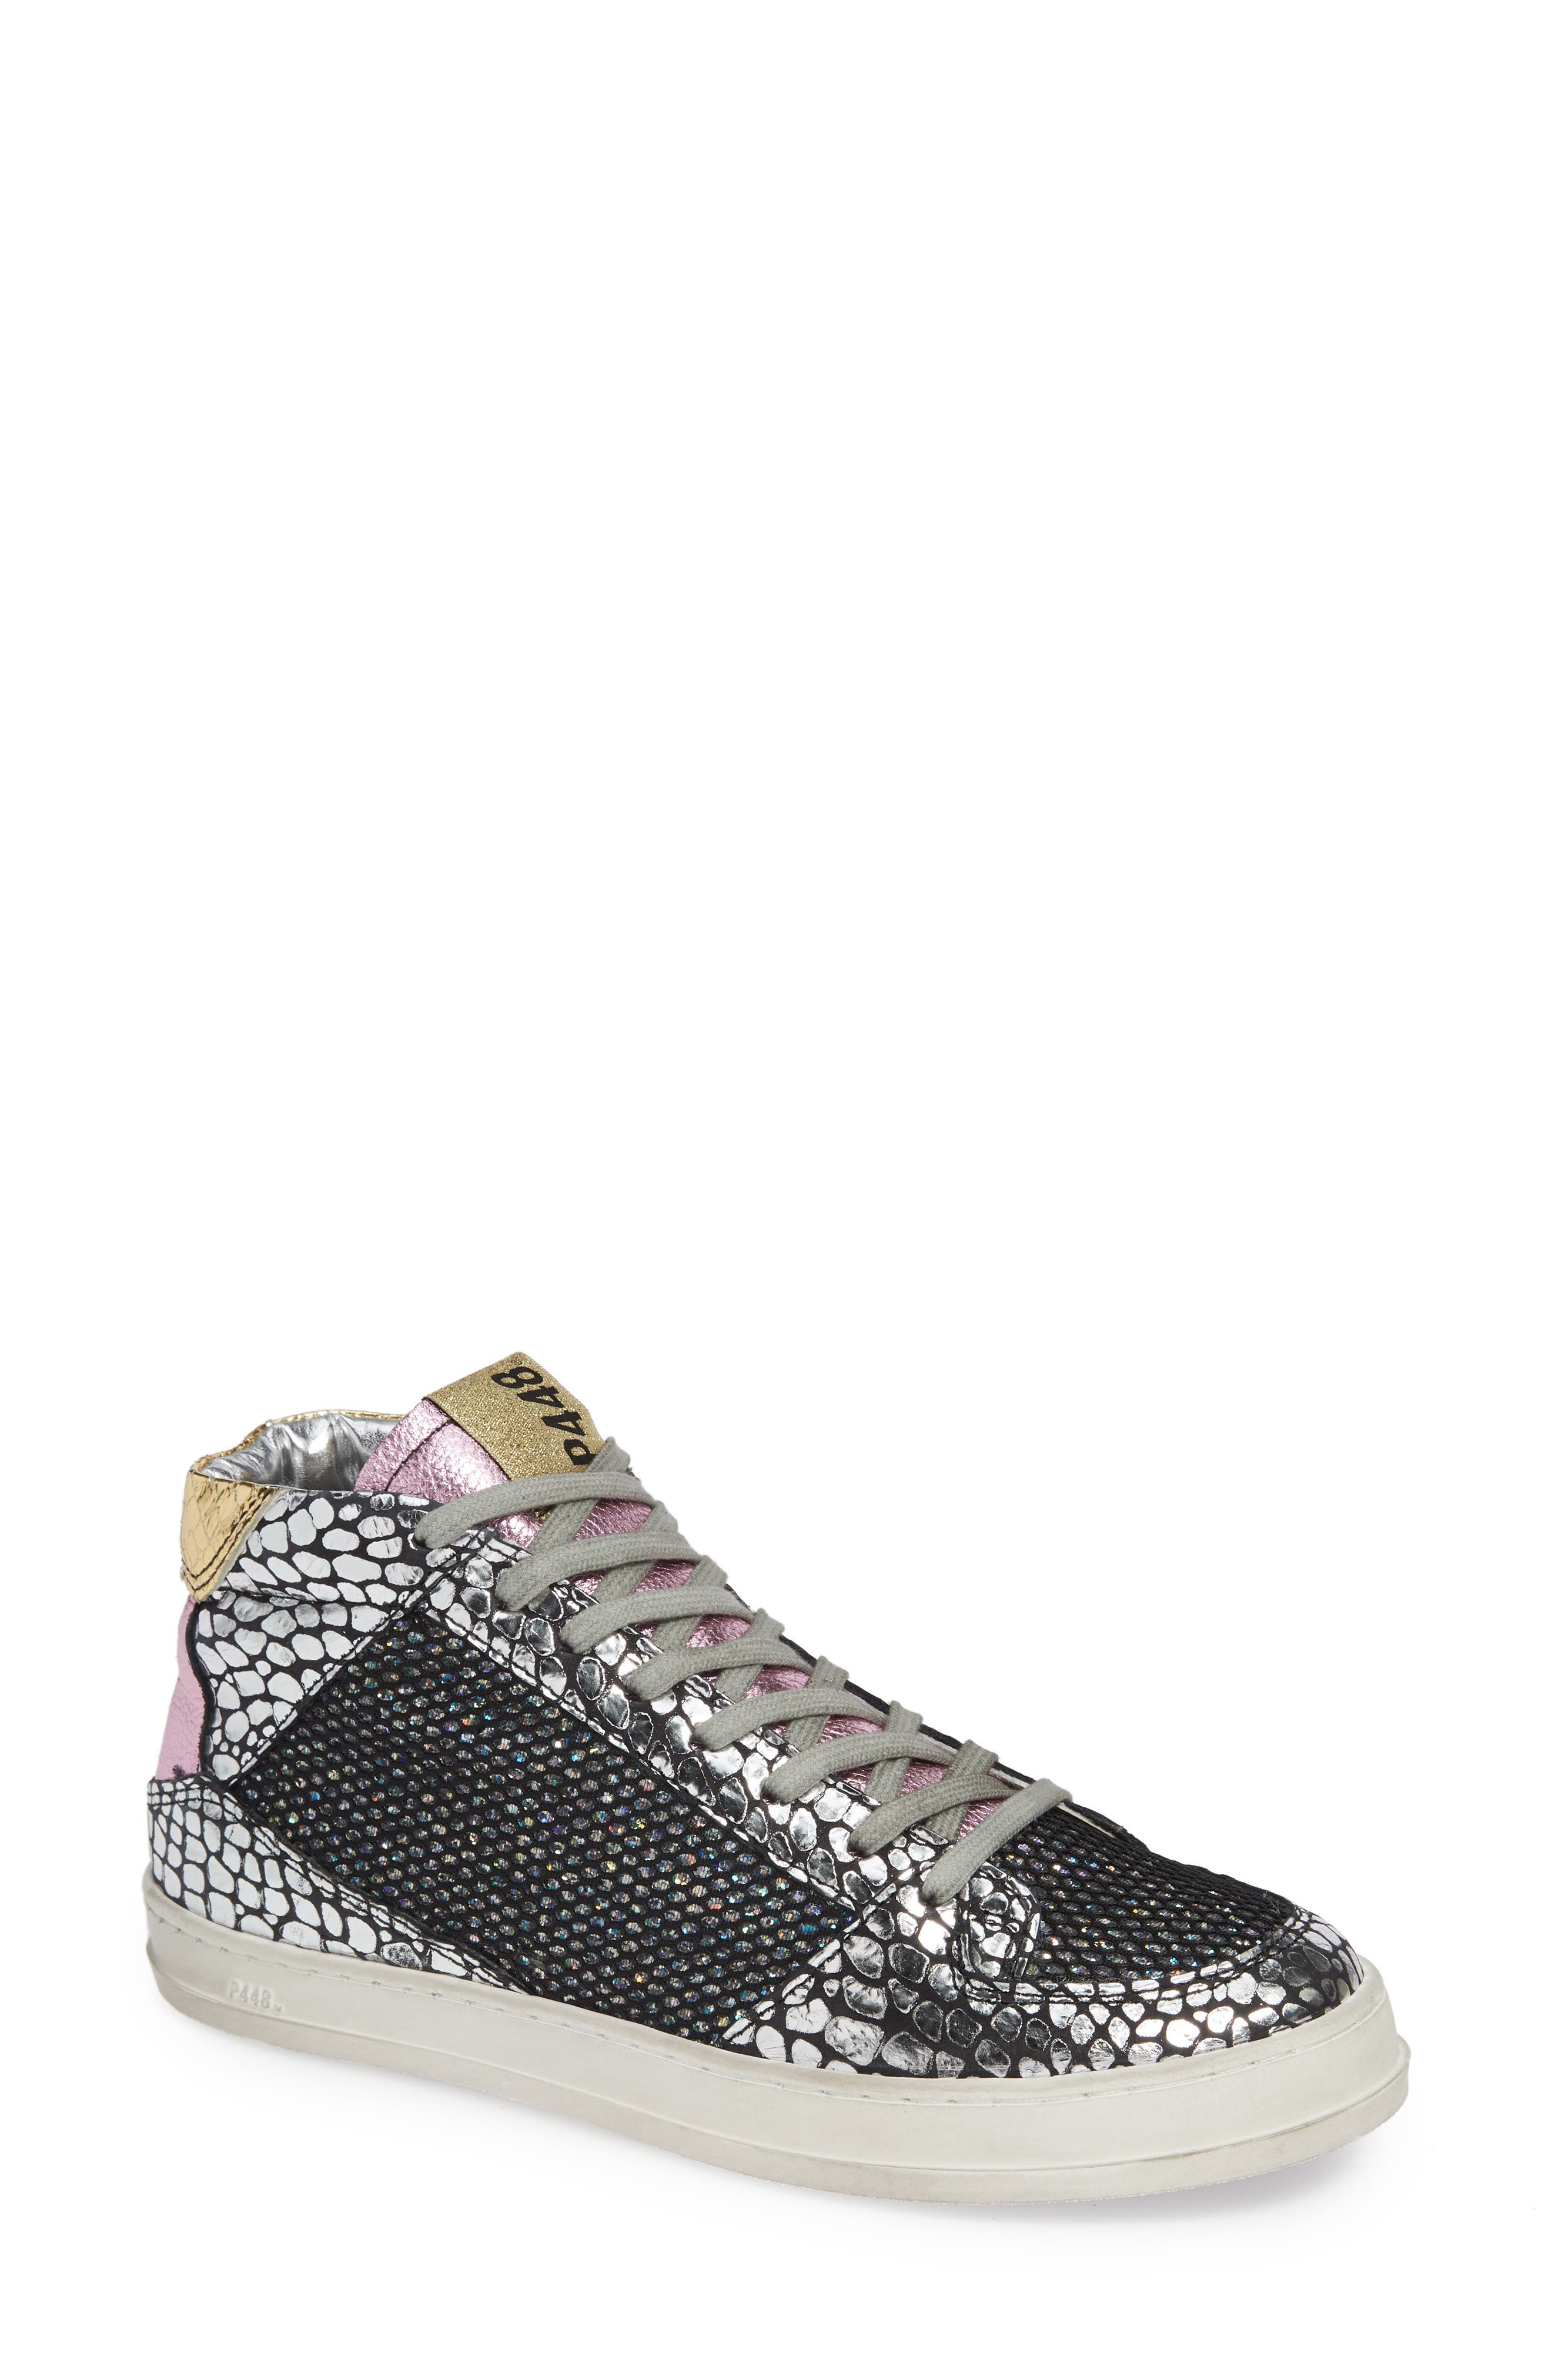 P448 Queens Mid-Top Sneakers In Croco Leather & Glitter Mesh in Black/ Gold Gloss